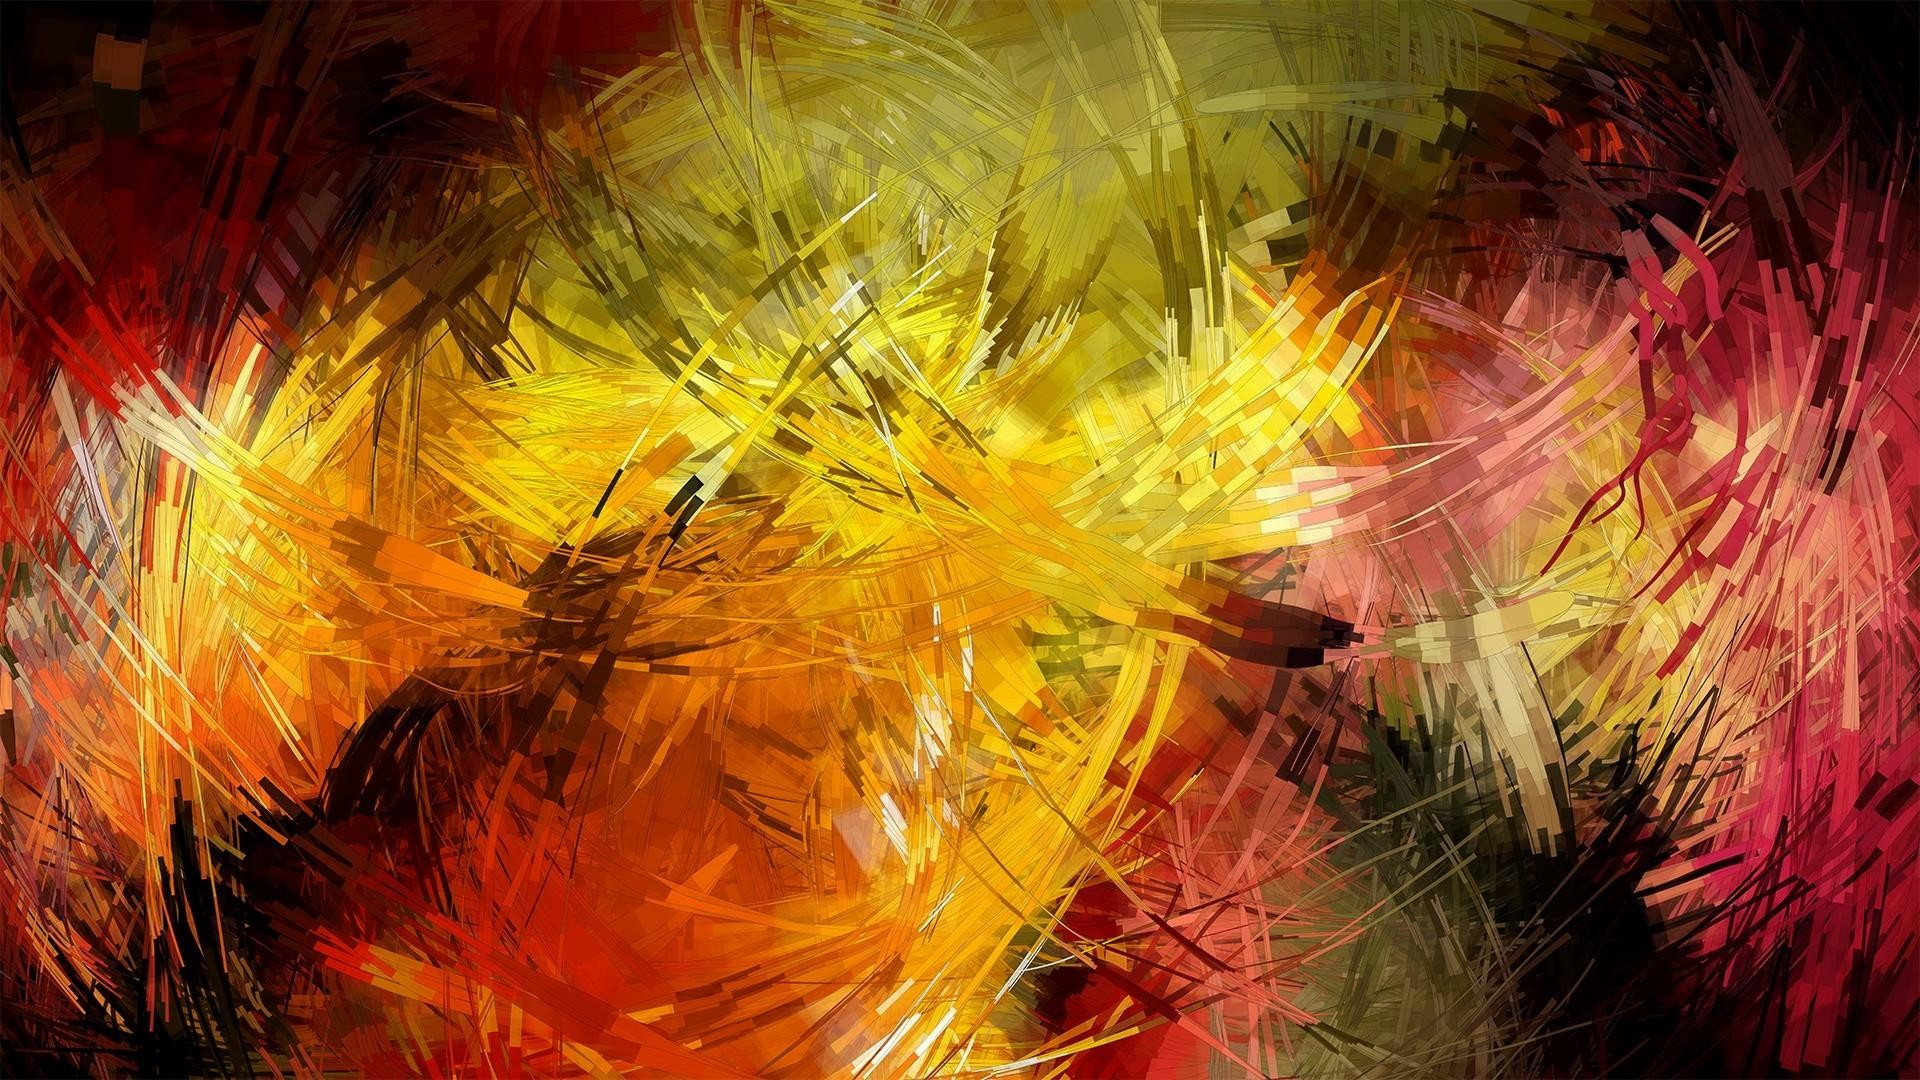 wallpaper.wiki-Abstract-Graphic-Art-Background-HD-PIC-